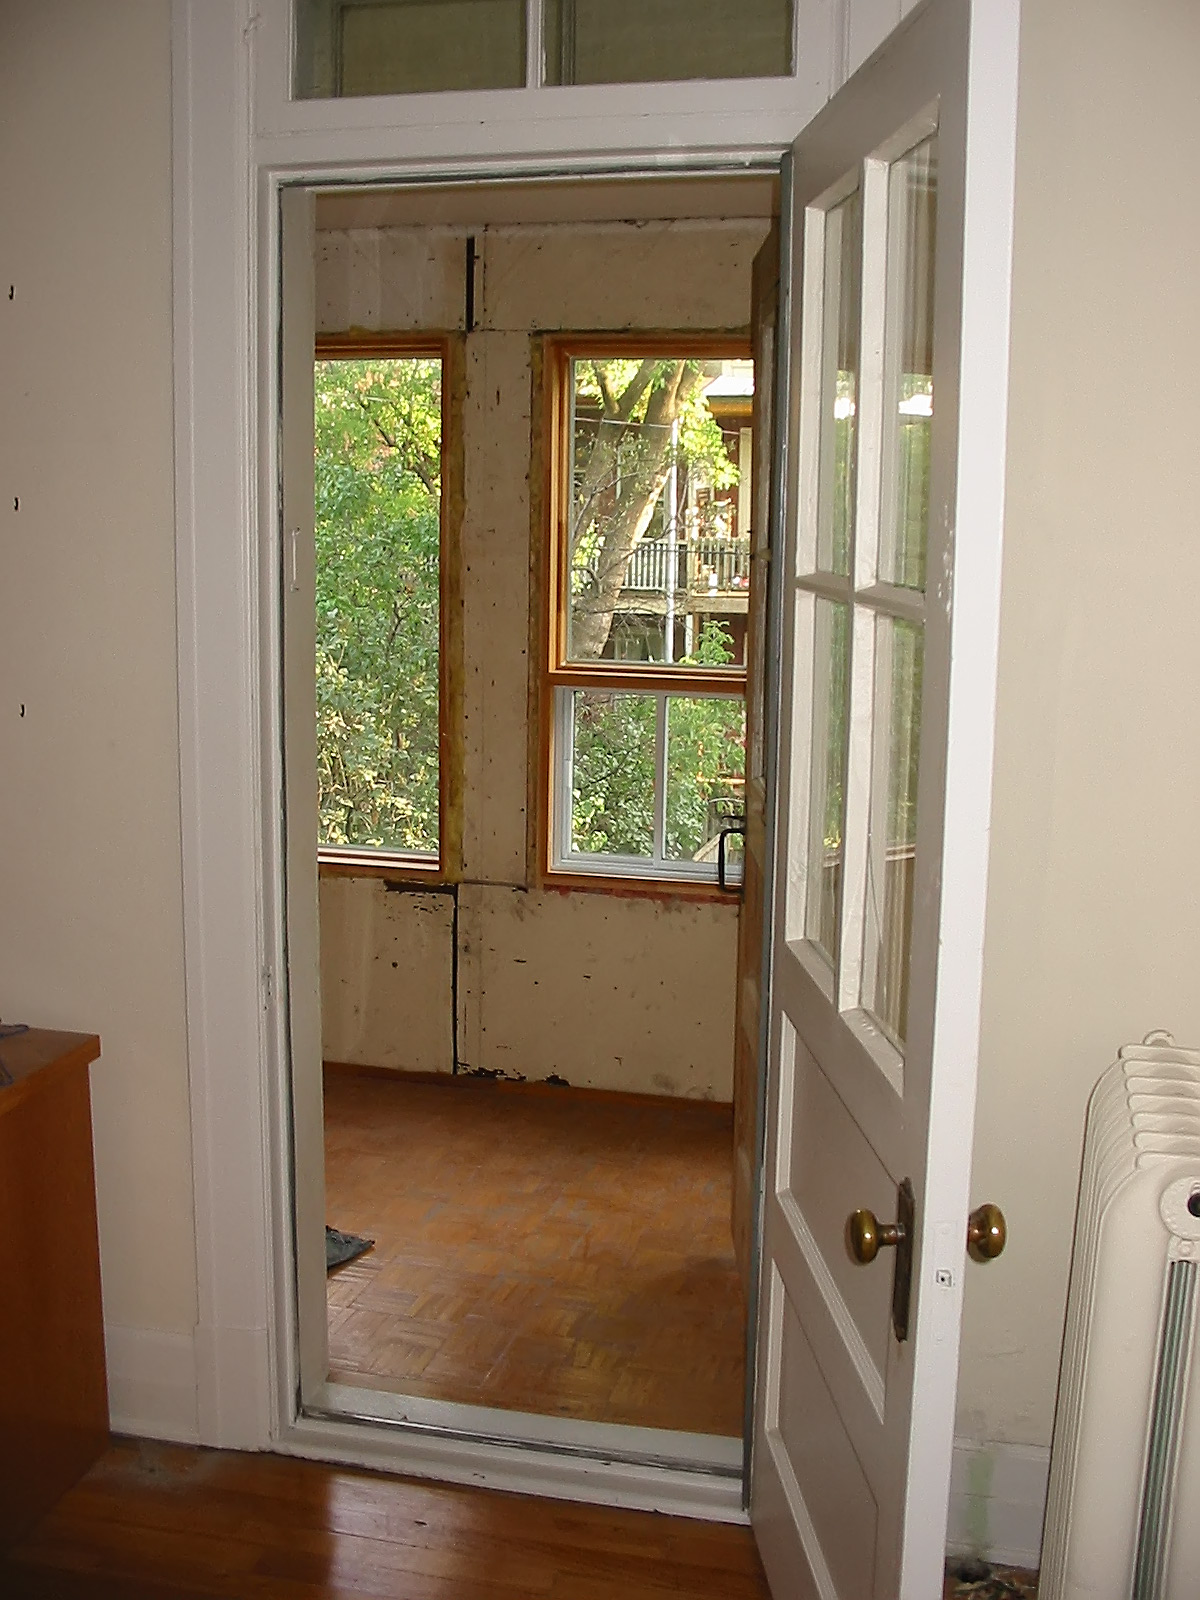 A view of the small room and porch before the renovation